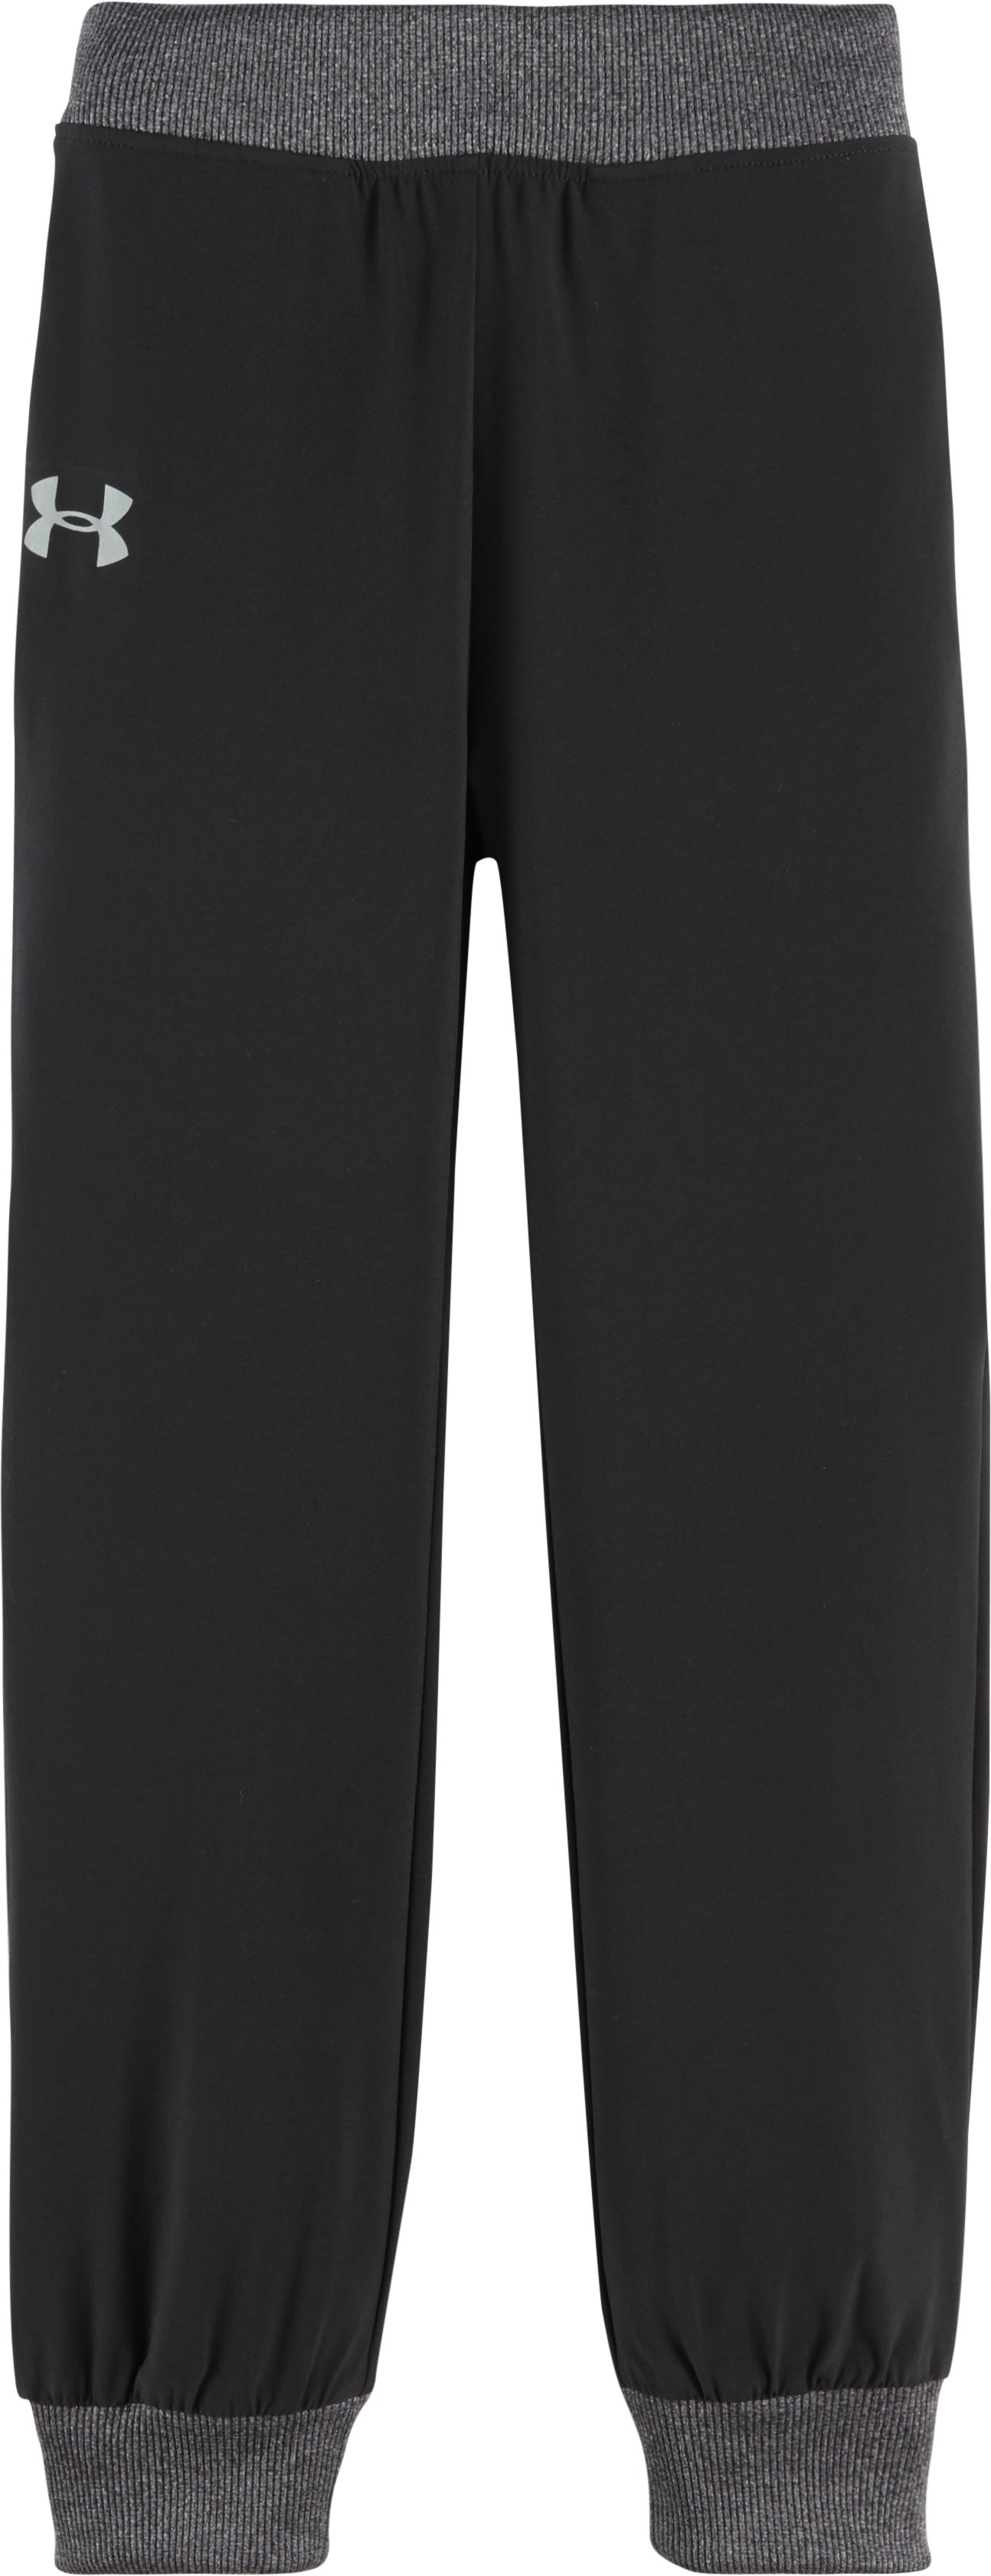 Girls' Pre-School UA Keep Moving Woven Pants, Black , zoomed image